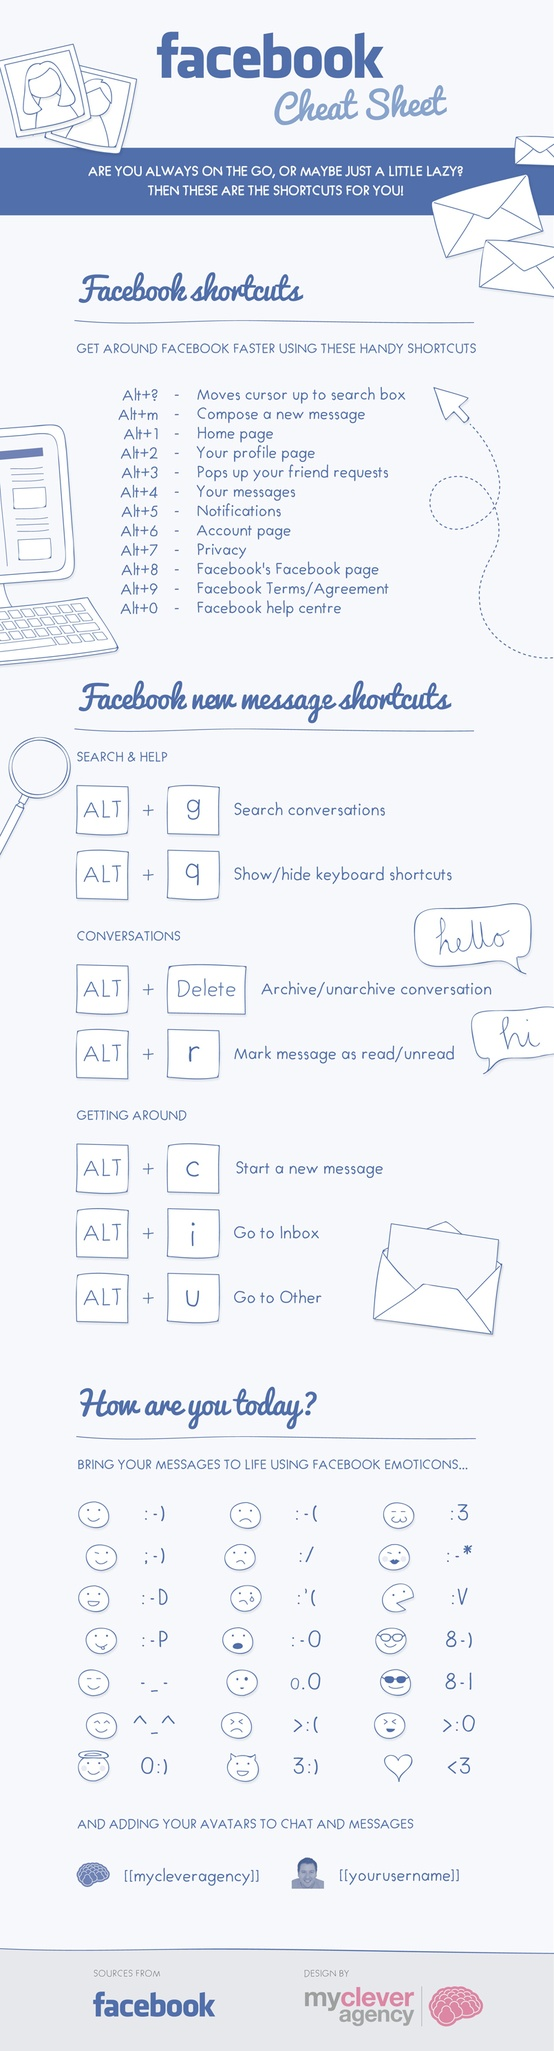 Facebook Shortcuts from Social Media Experts